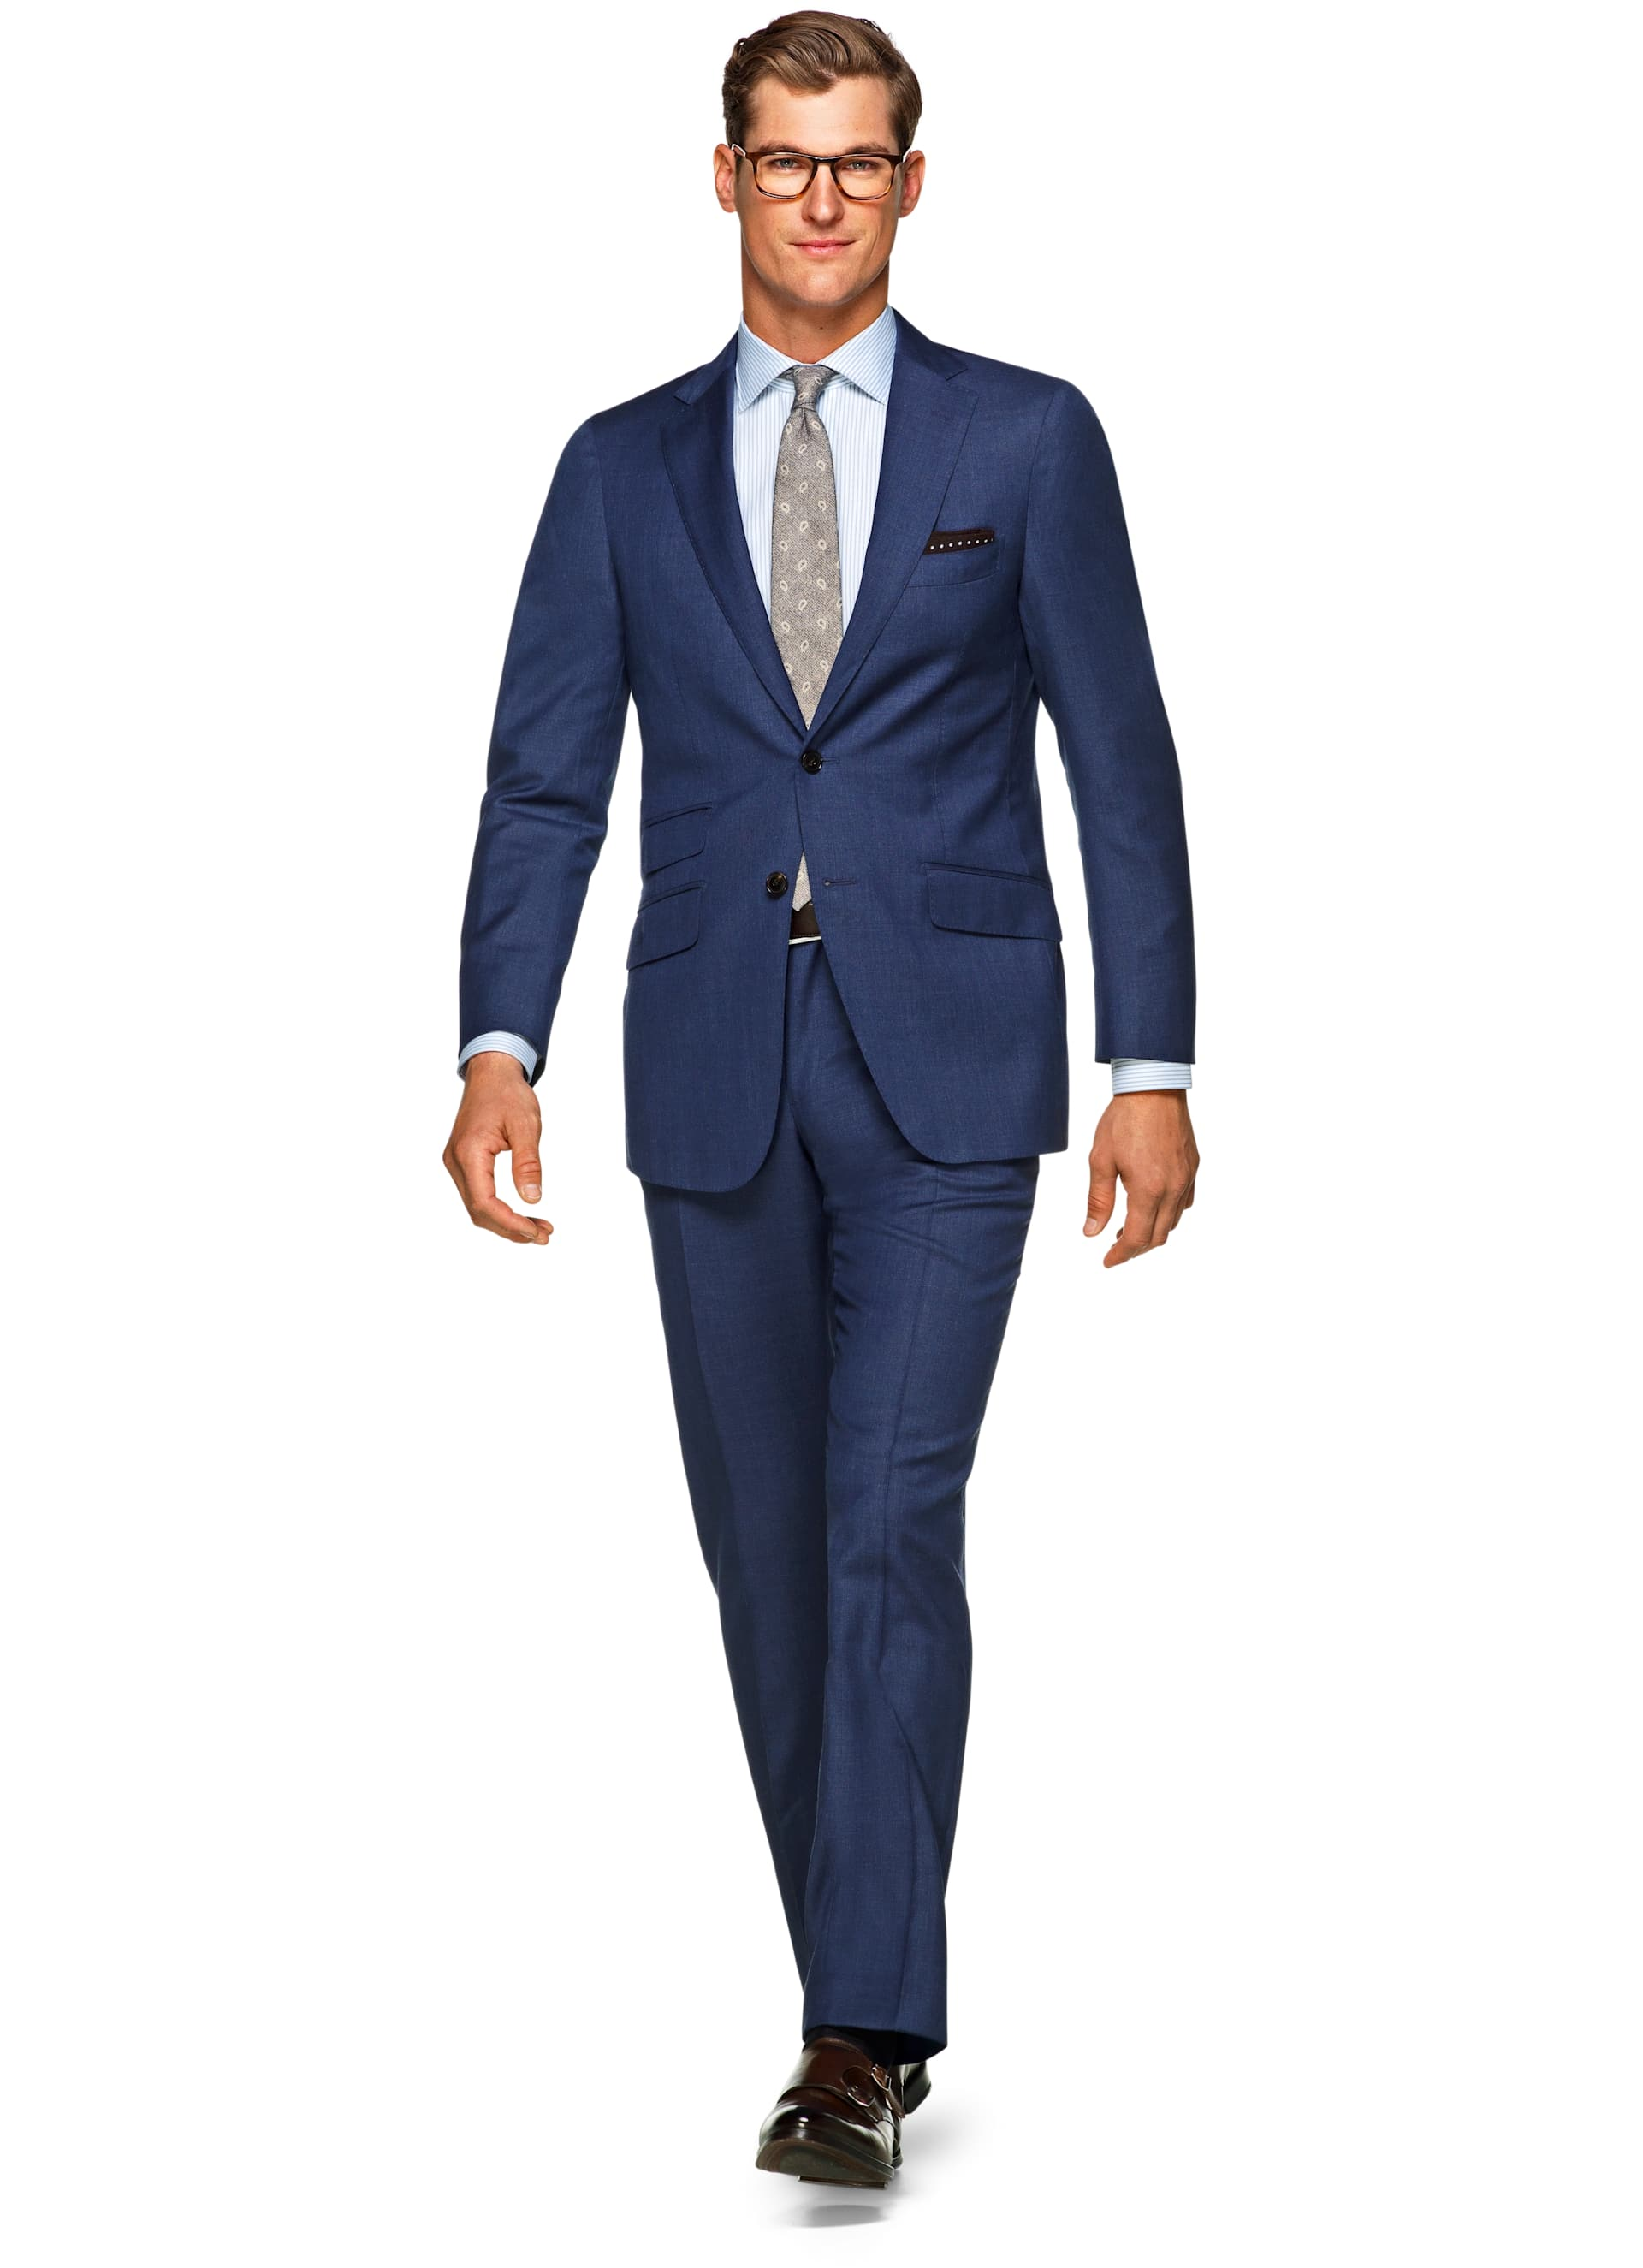 Traje Azul Liso Sienna P4843i | Suitsupply Online Store